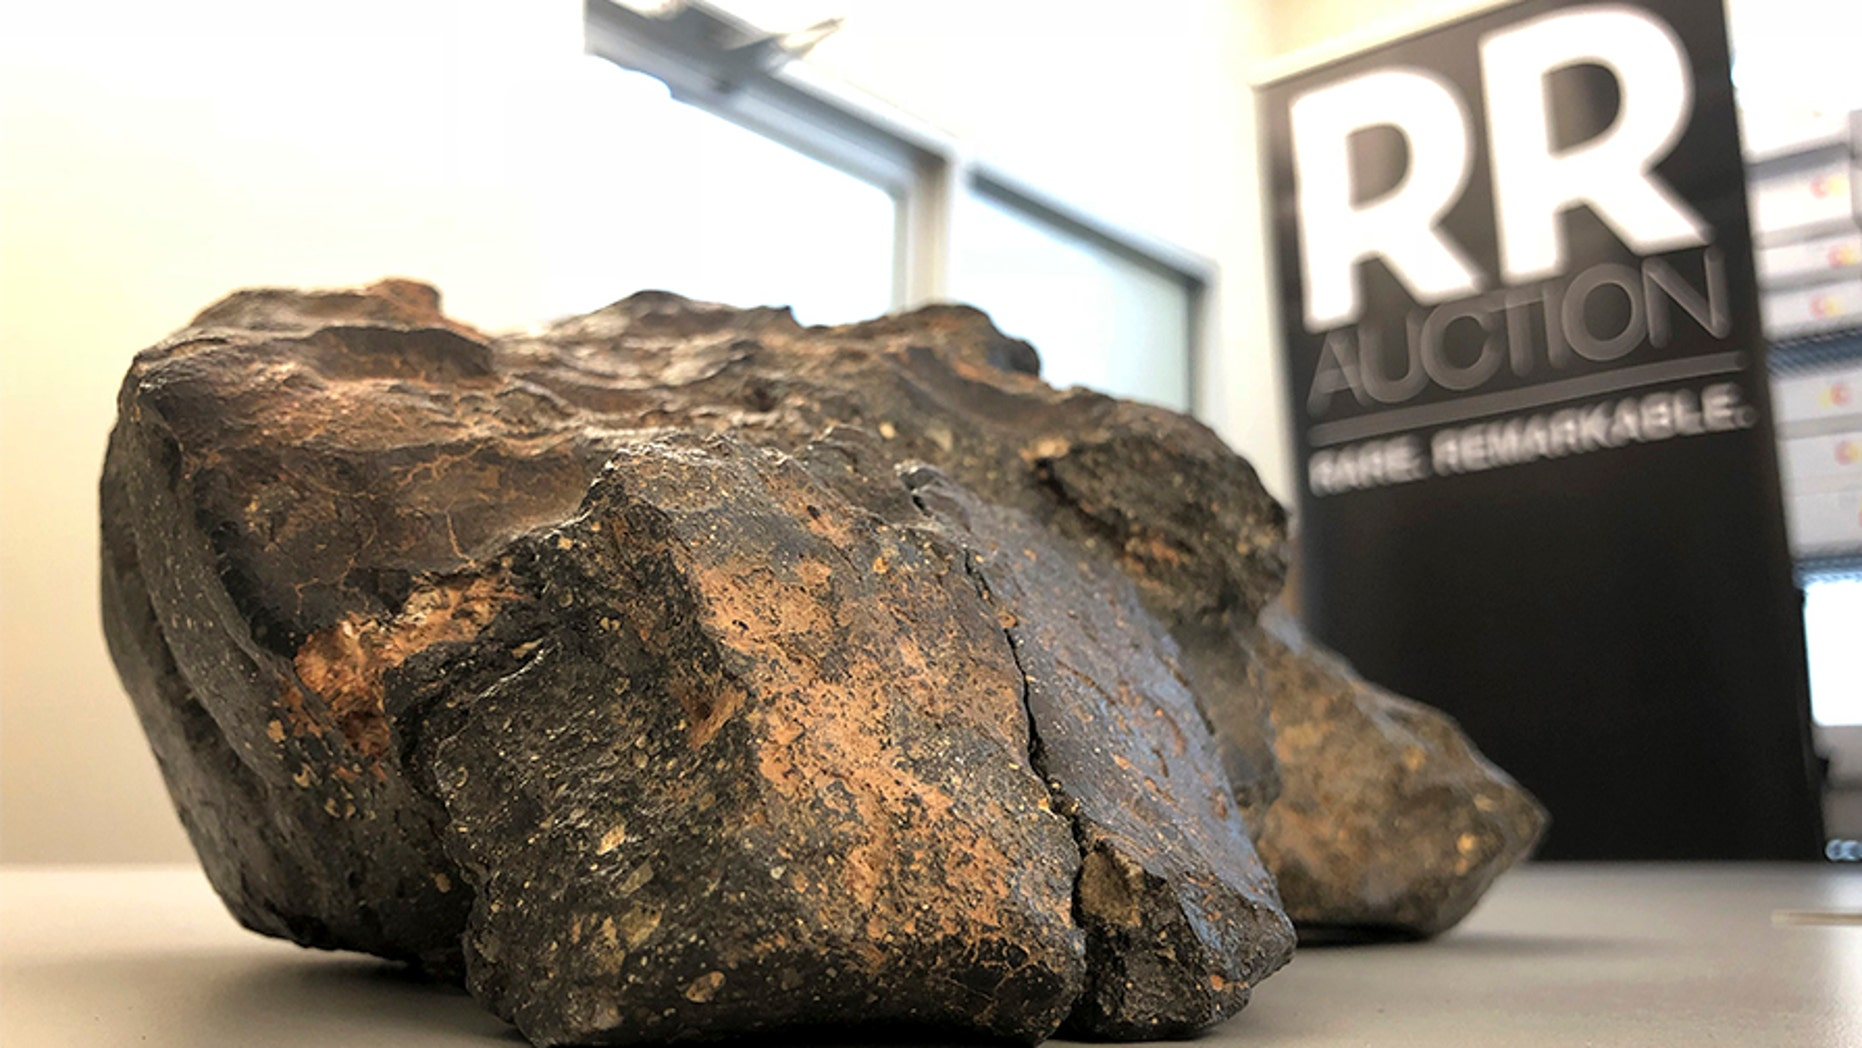 A Boston-based auction house is looking for the next proud owner of a 12-pound lunar meteorite, said to have an estimated price tag of $500,000.